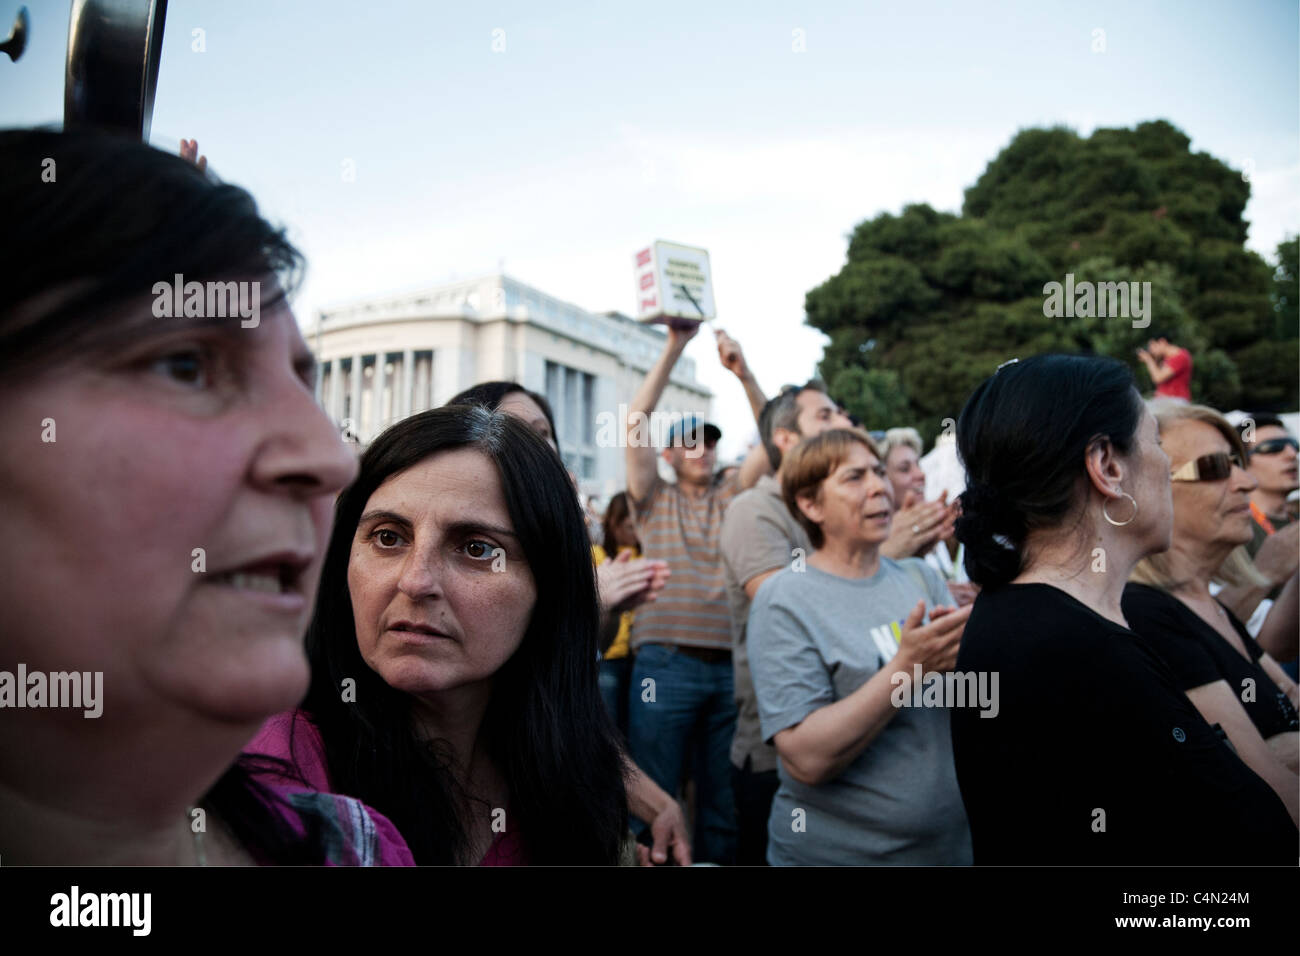 A glance full of dynamism and wonder through the yelling crowd. - Stock Image